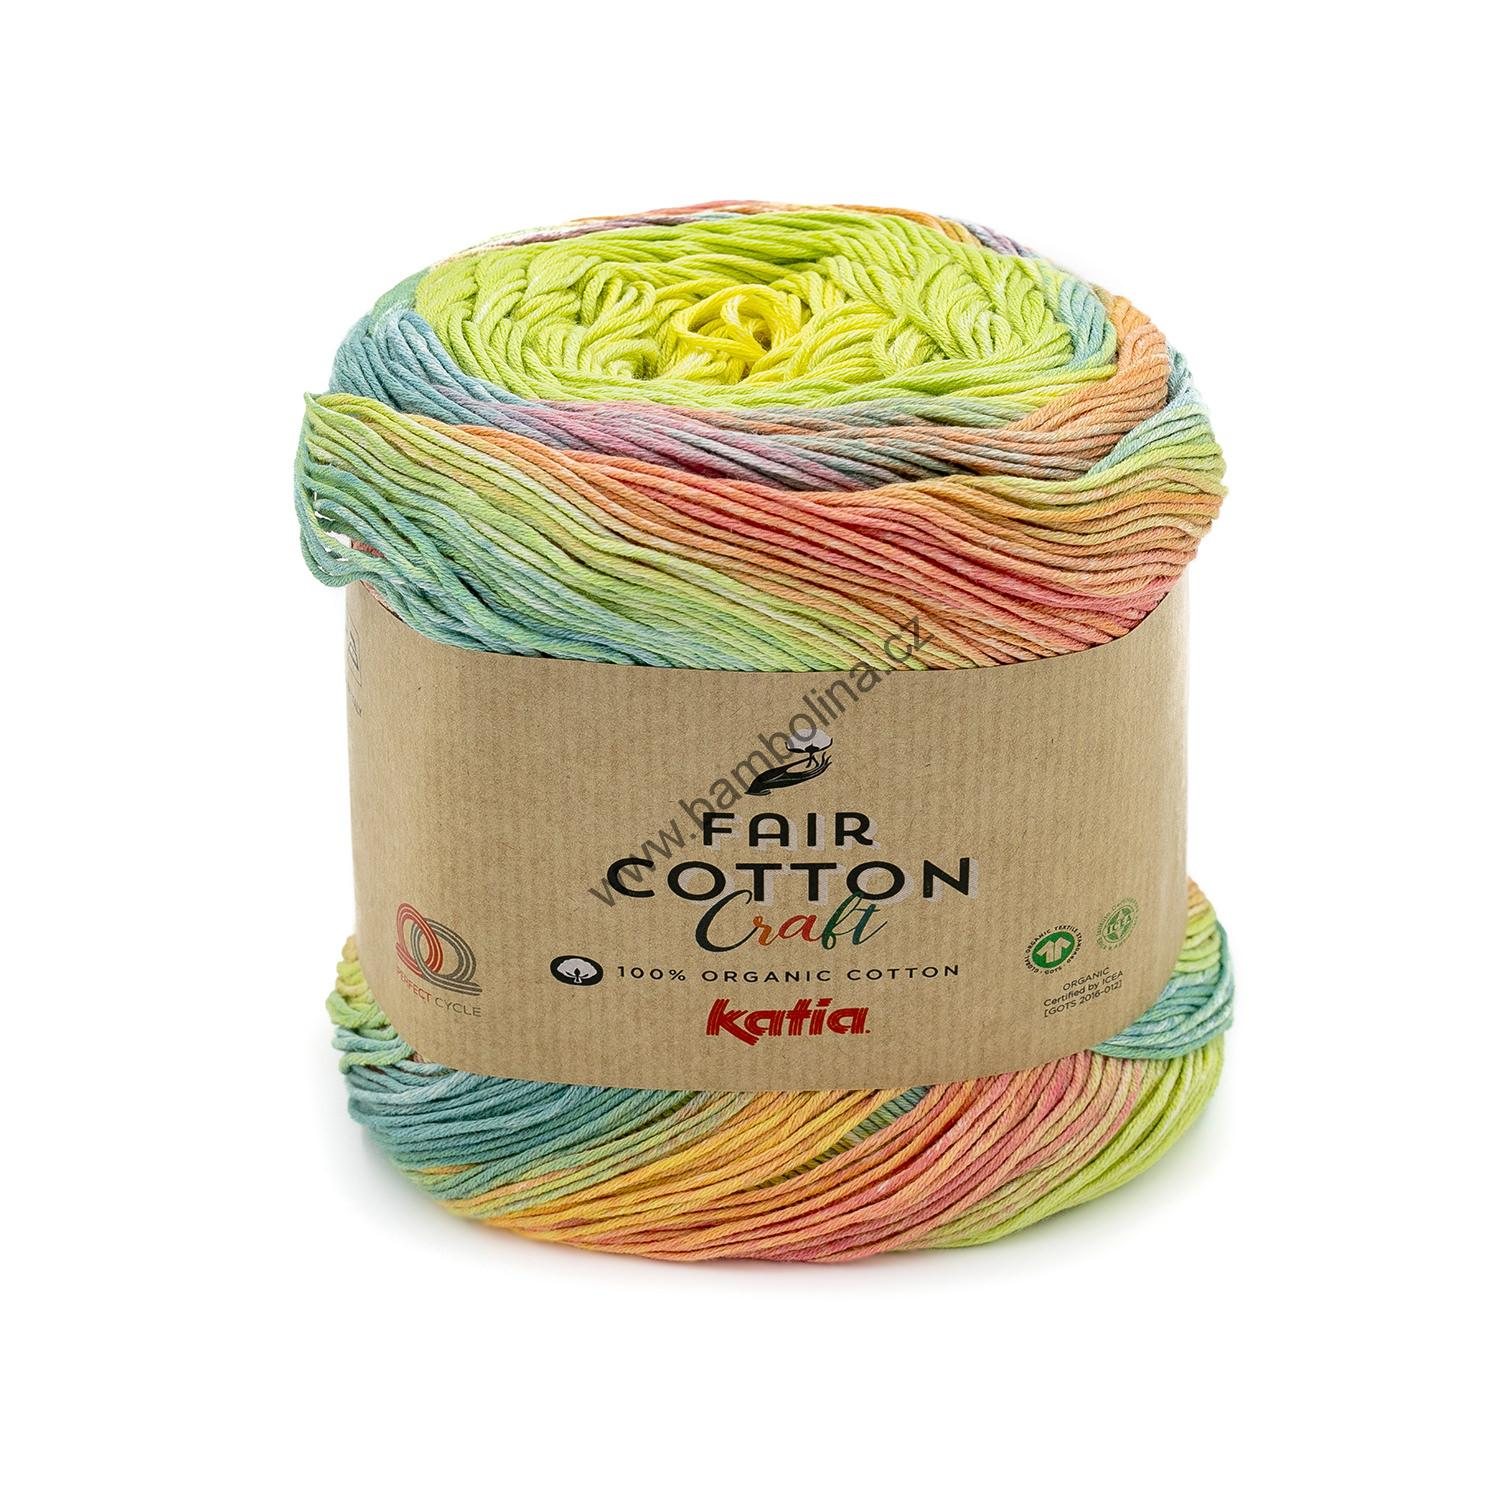 KATIA - FAIR COTTON CRAFT 602 +  3 návody ZDARMA -  Lemon/Blue/Green/Rose